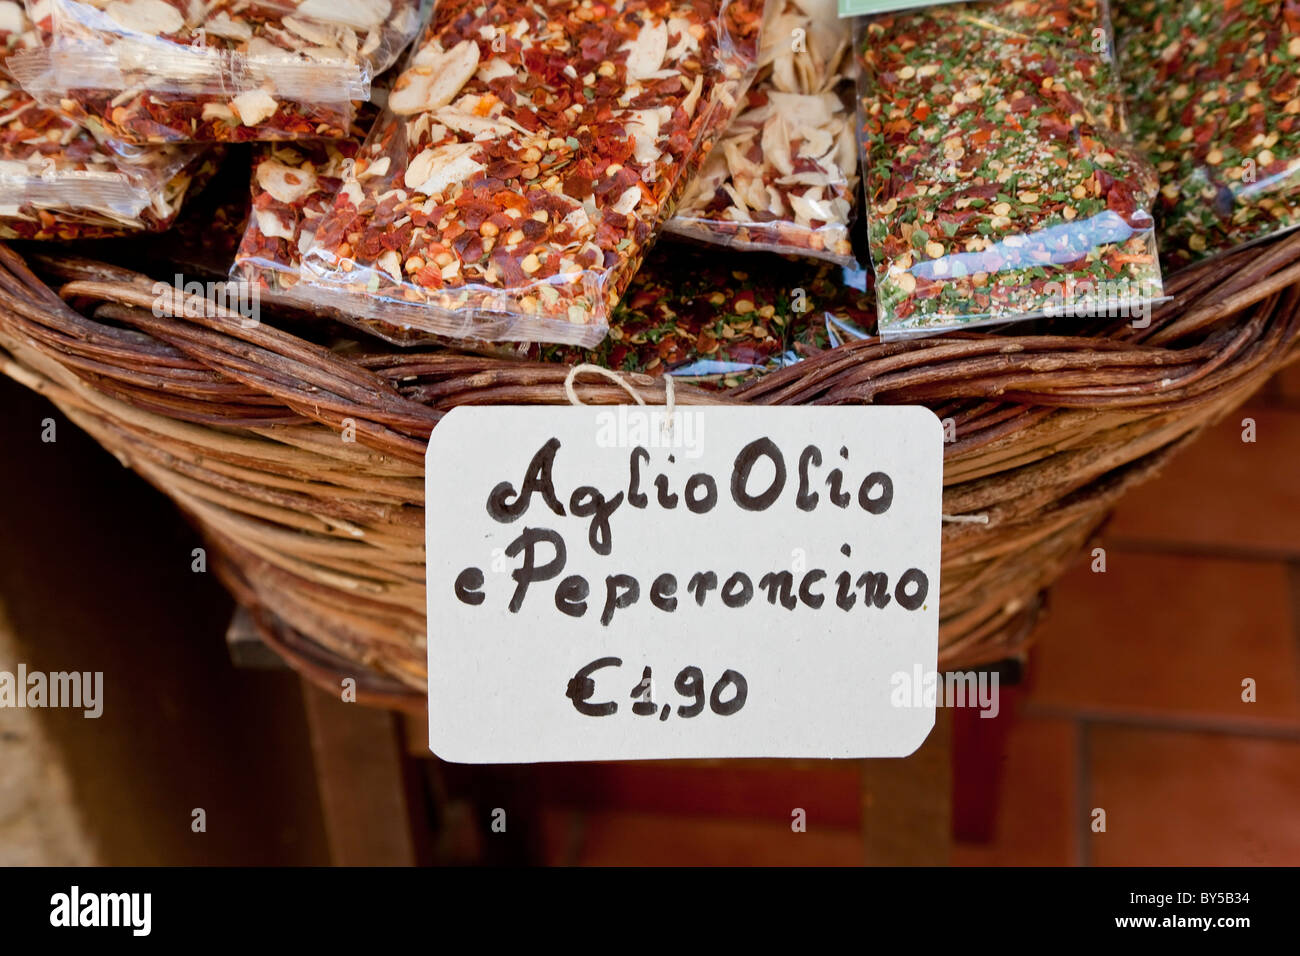 Dried peperoncino chilli flakes for Aglio Olio pasta sauce, Pienza, Tuscany, Italy - Stock Image